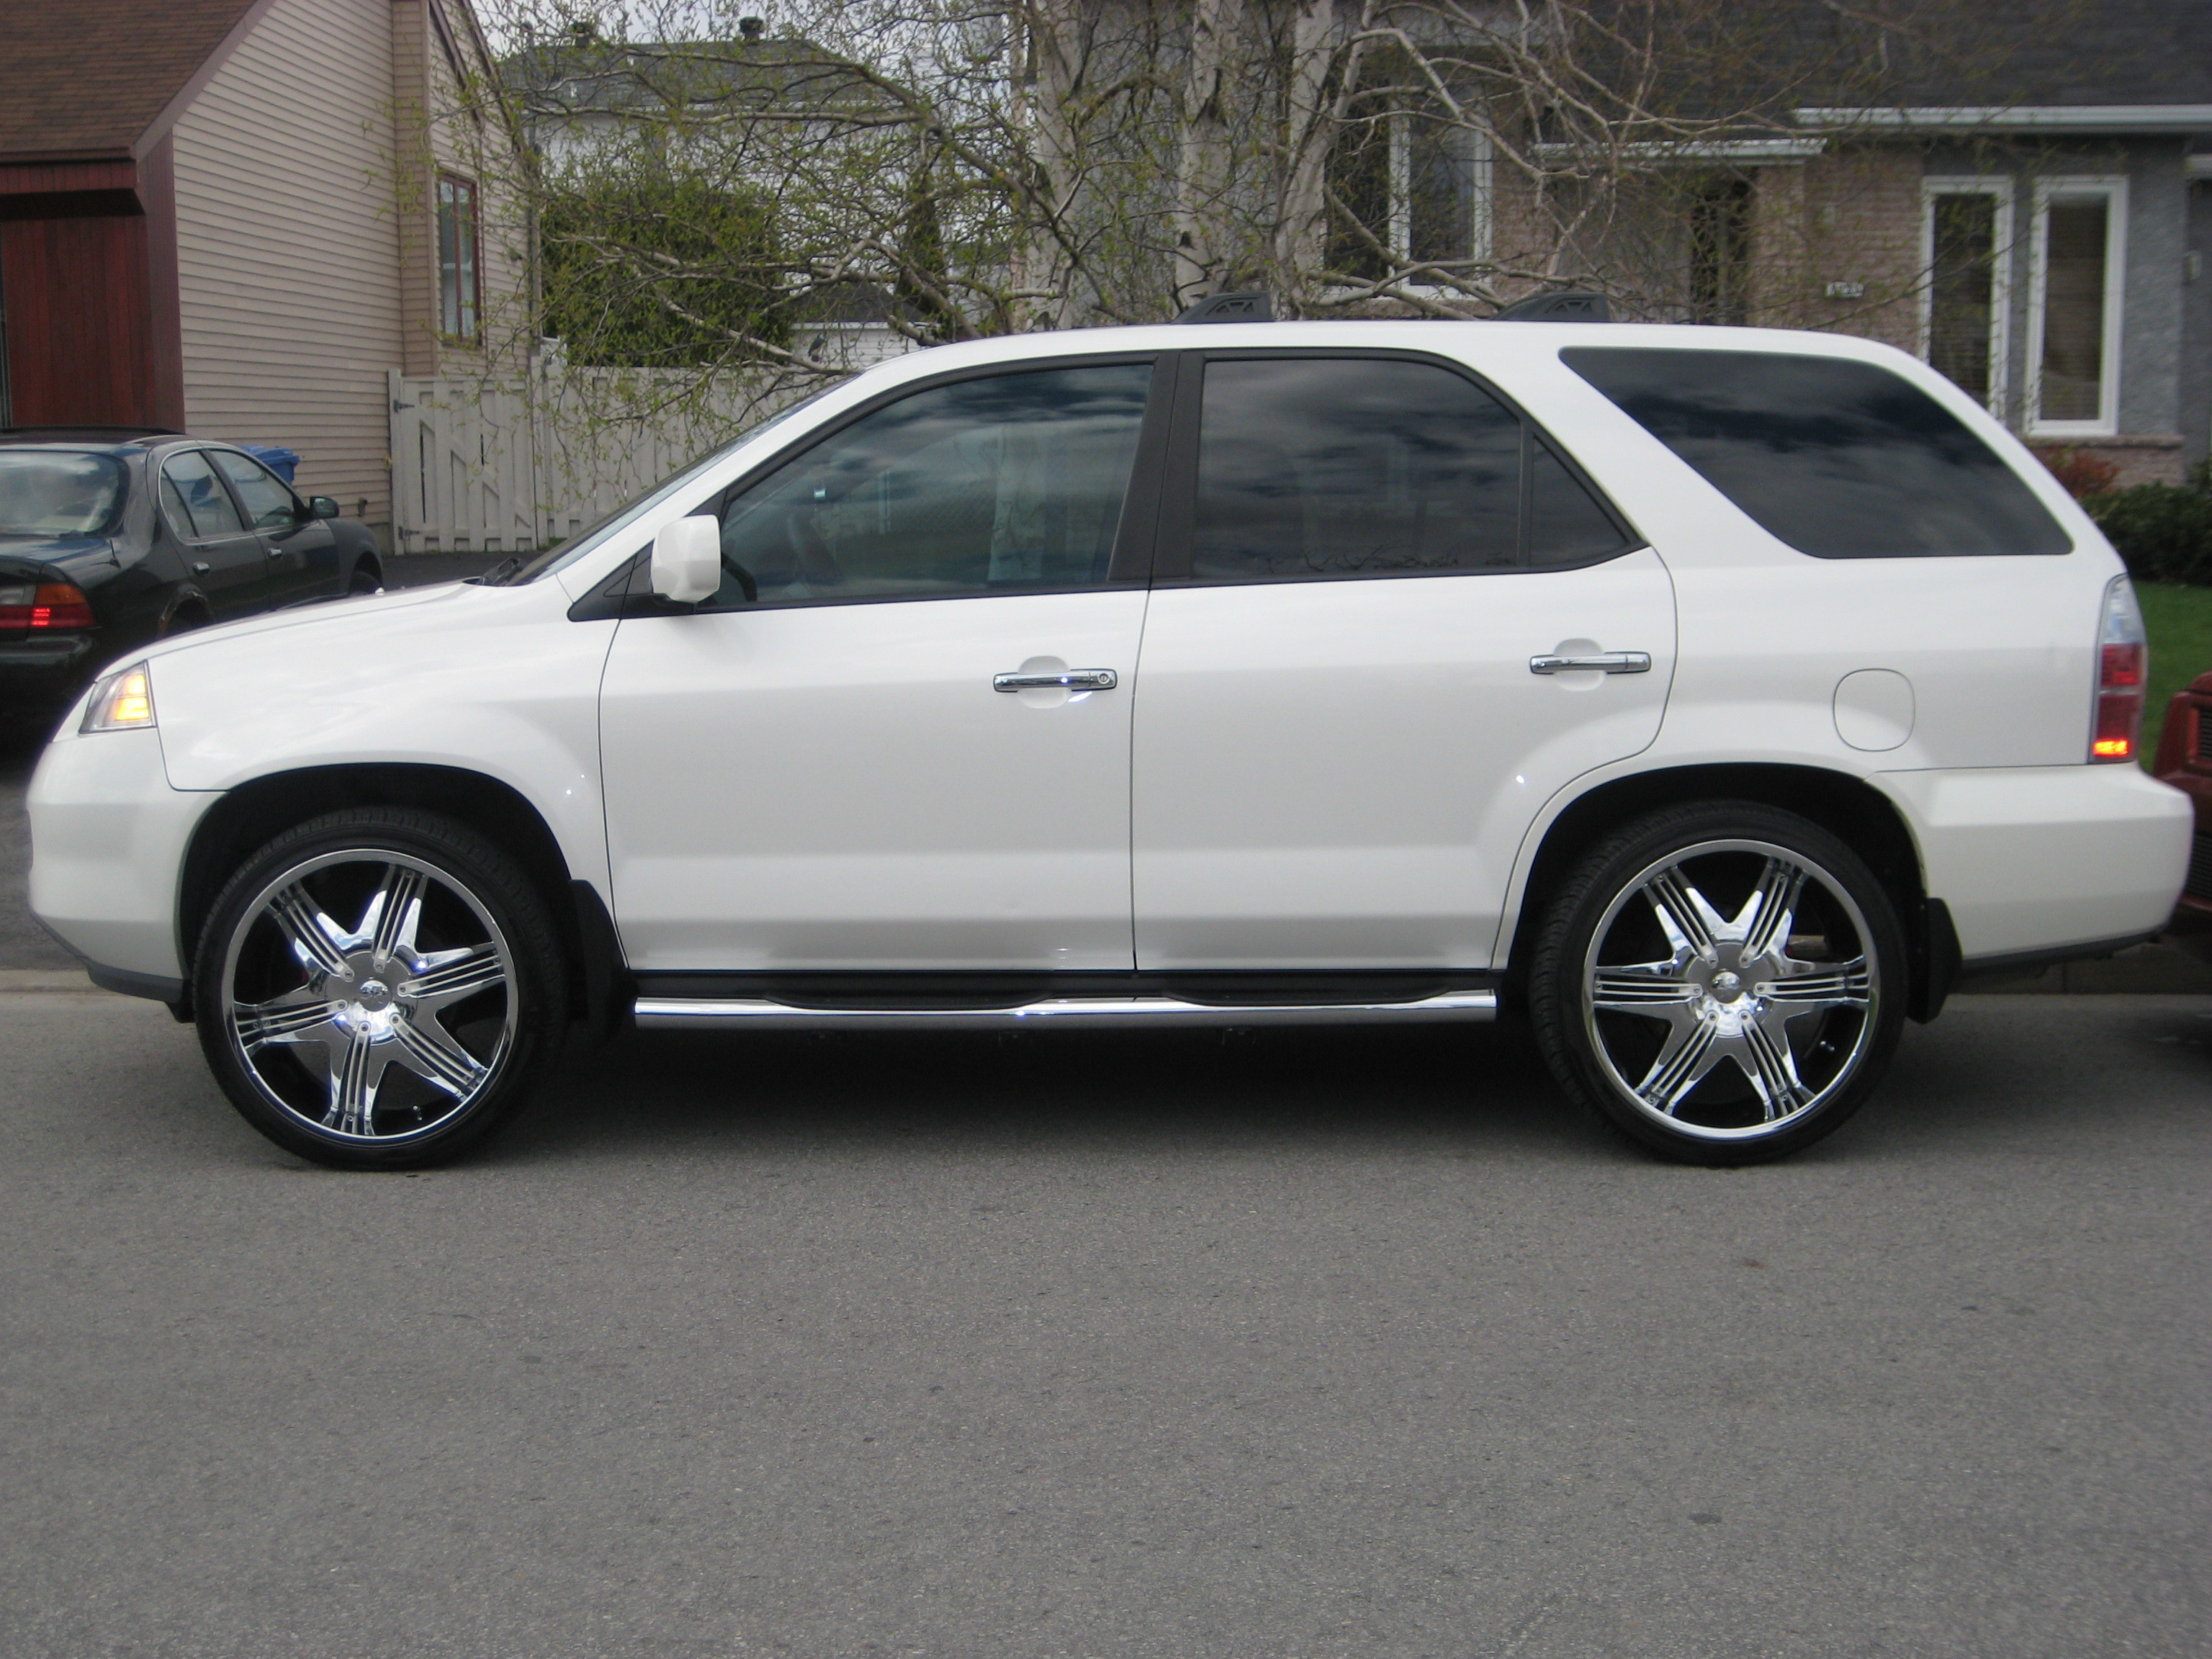 Thebigstan 2004 Acura Mdx Specs Photos Modification Info